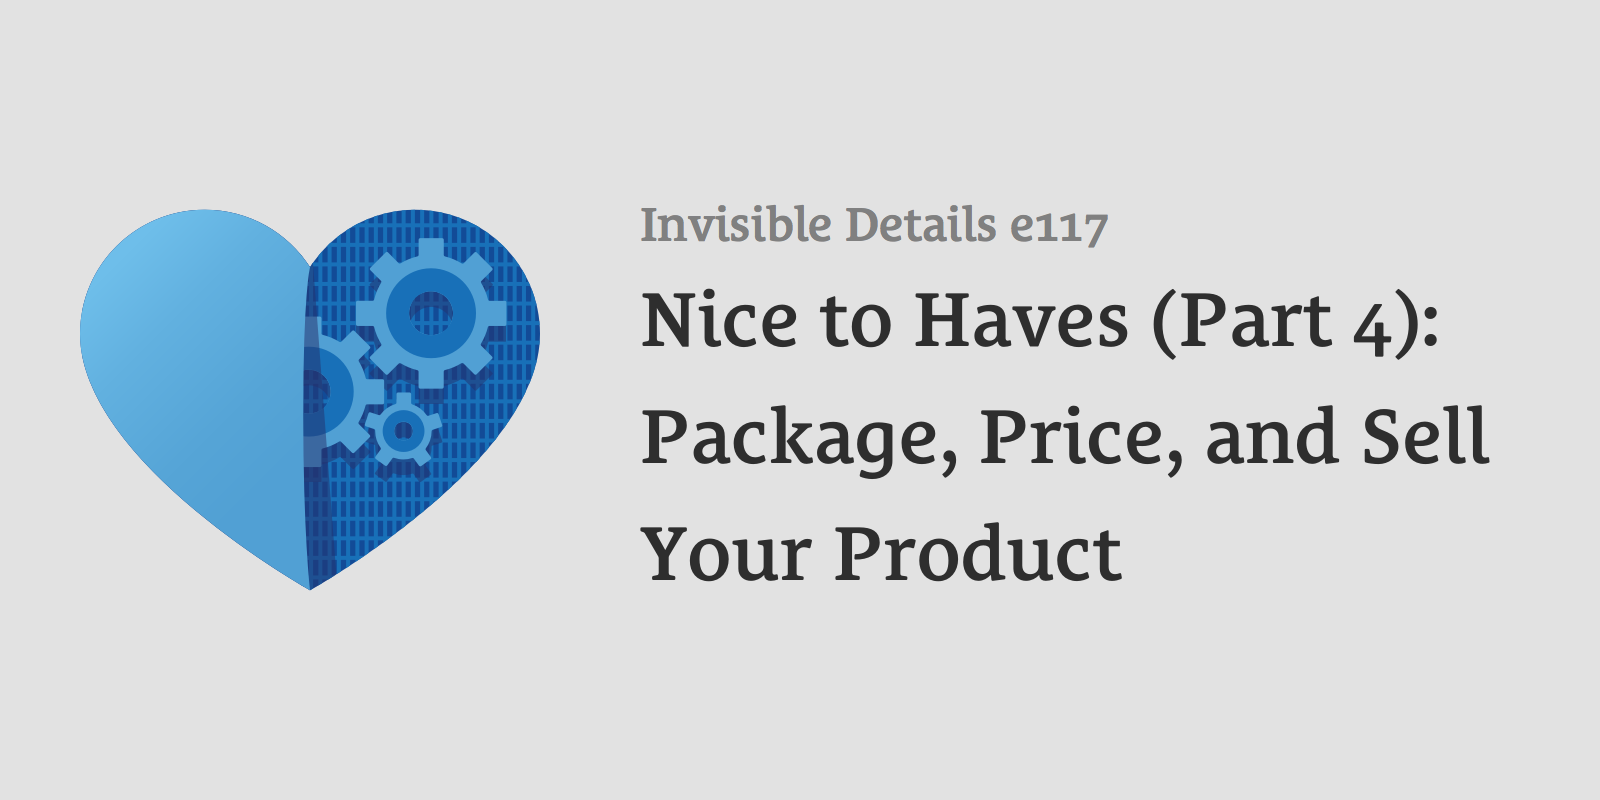 Nice to Haves (Part 4): Package, Price, and Sell Your Product